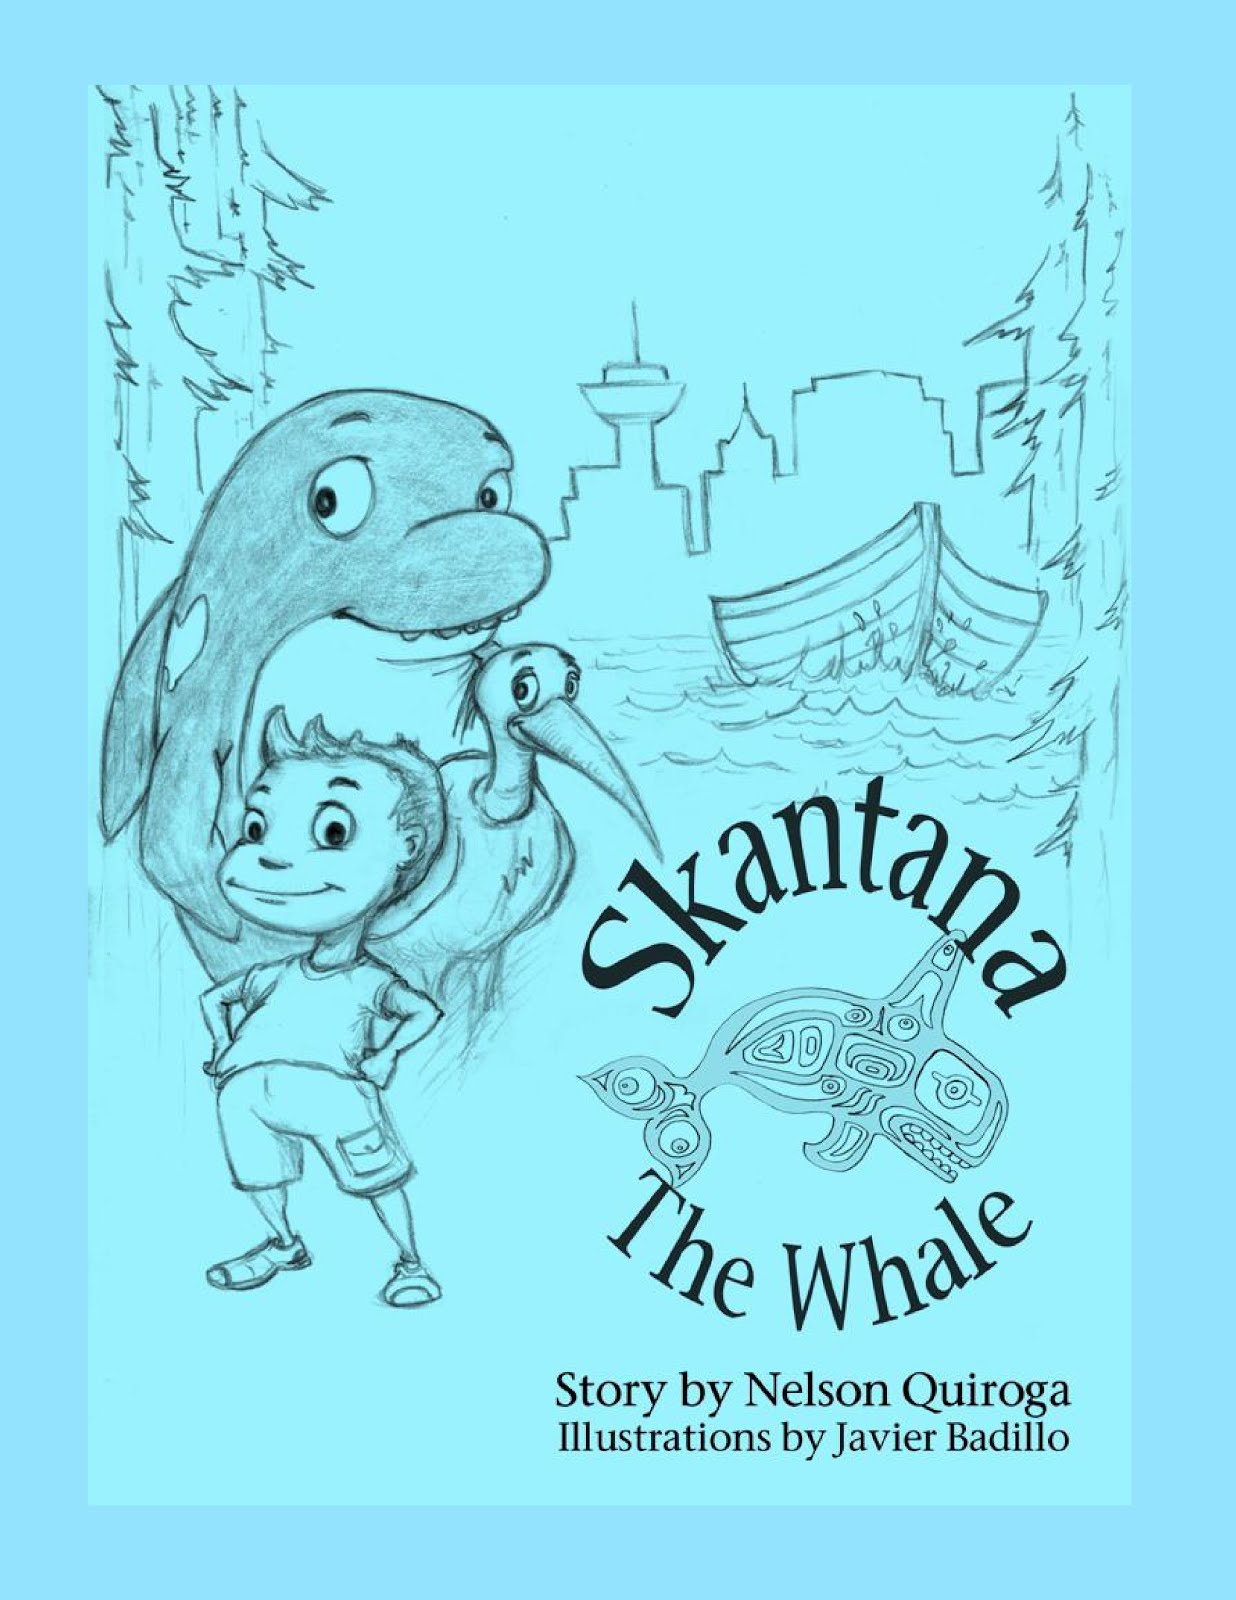 """Skantana The Whale"" by Nelson Quiroga available at Amazon Books click on image to order"